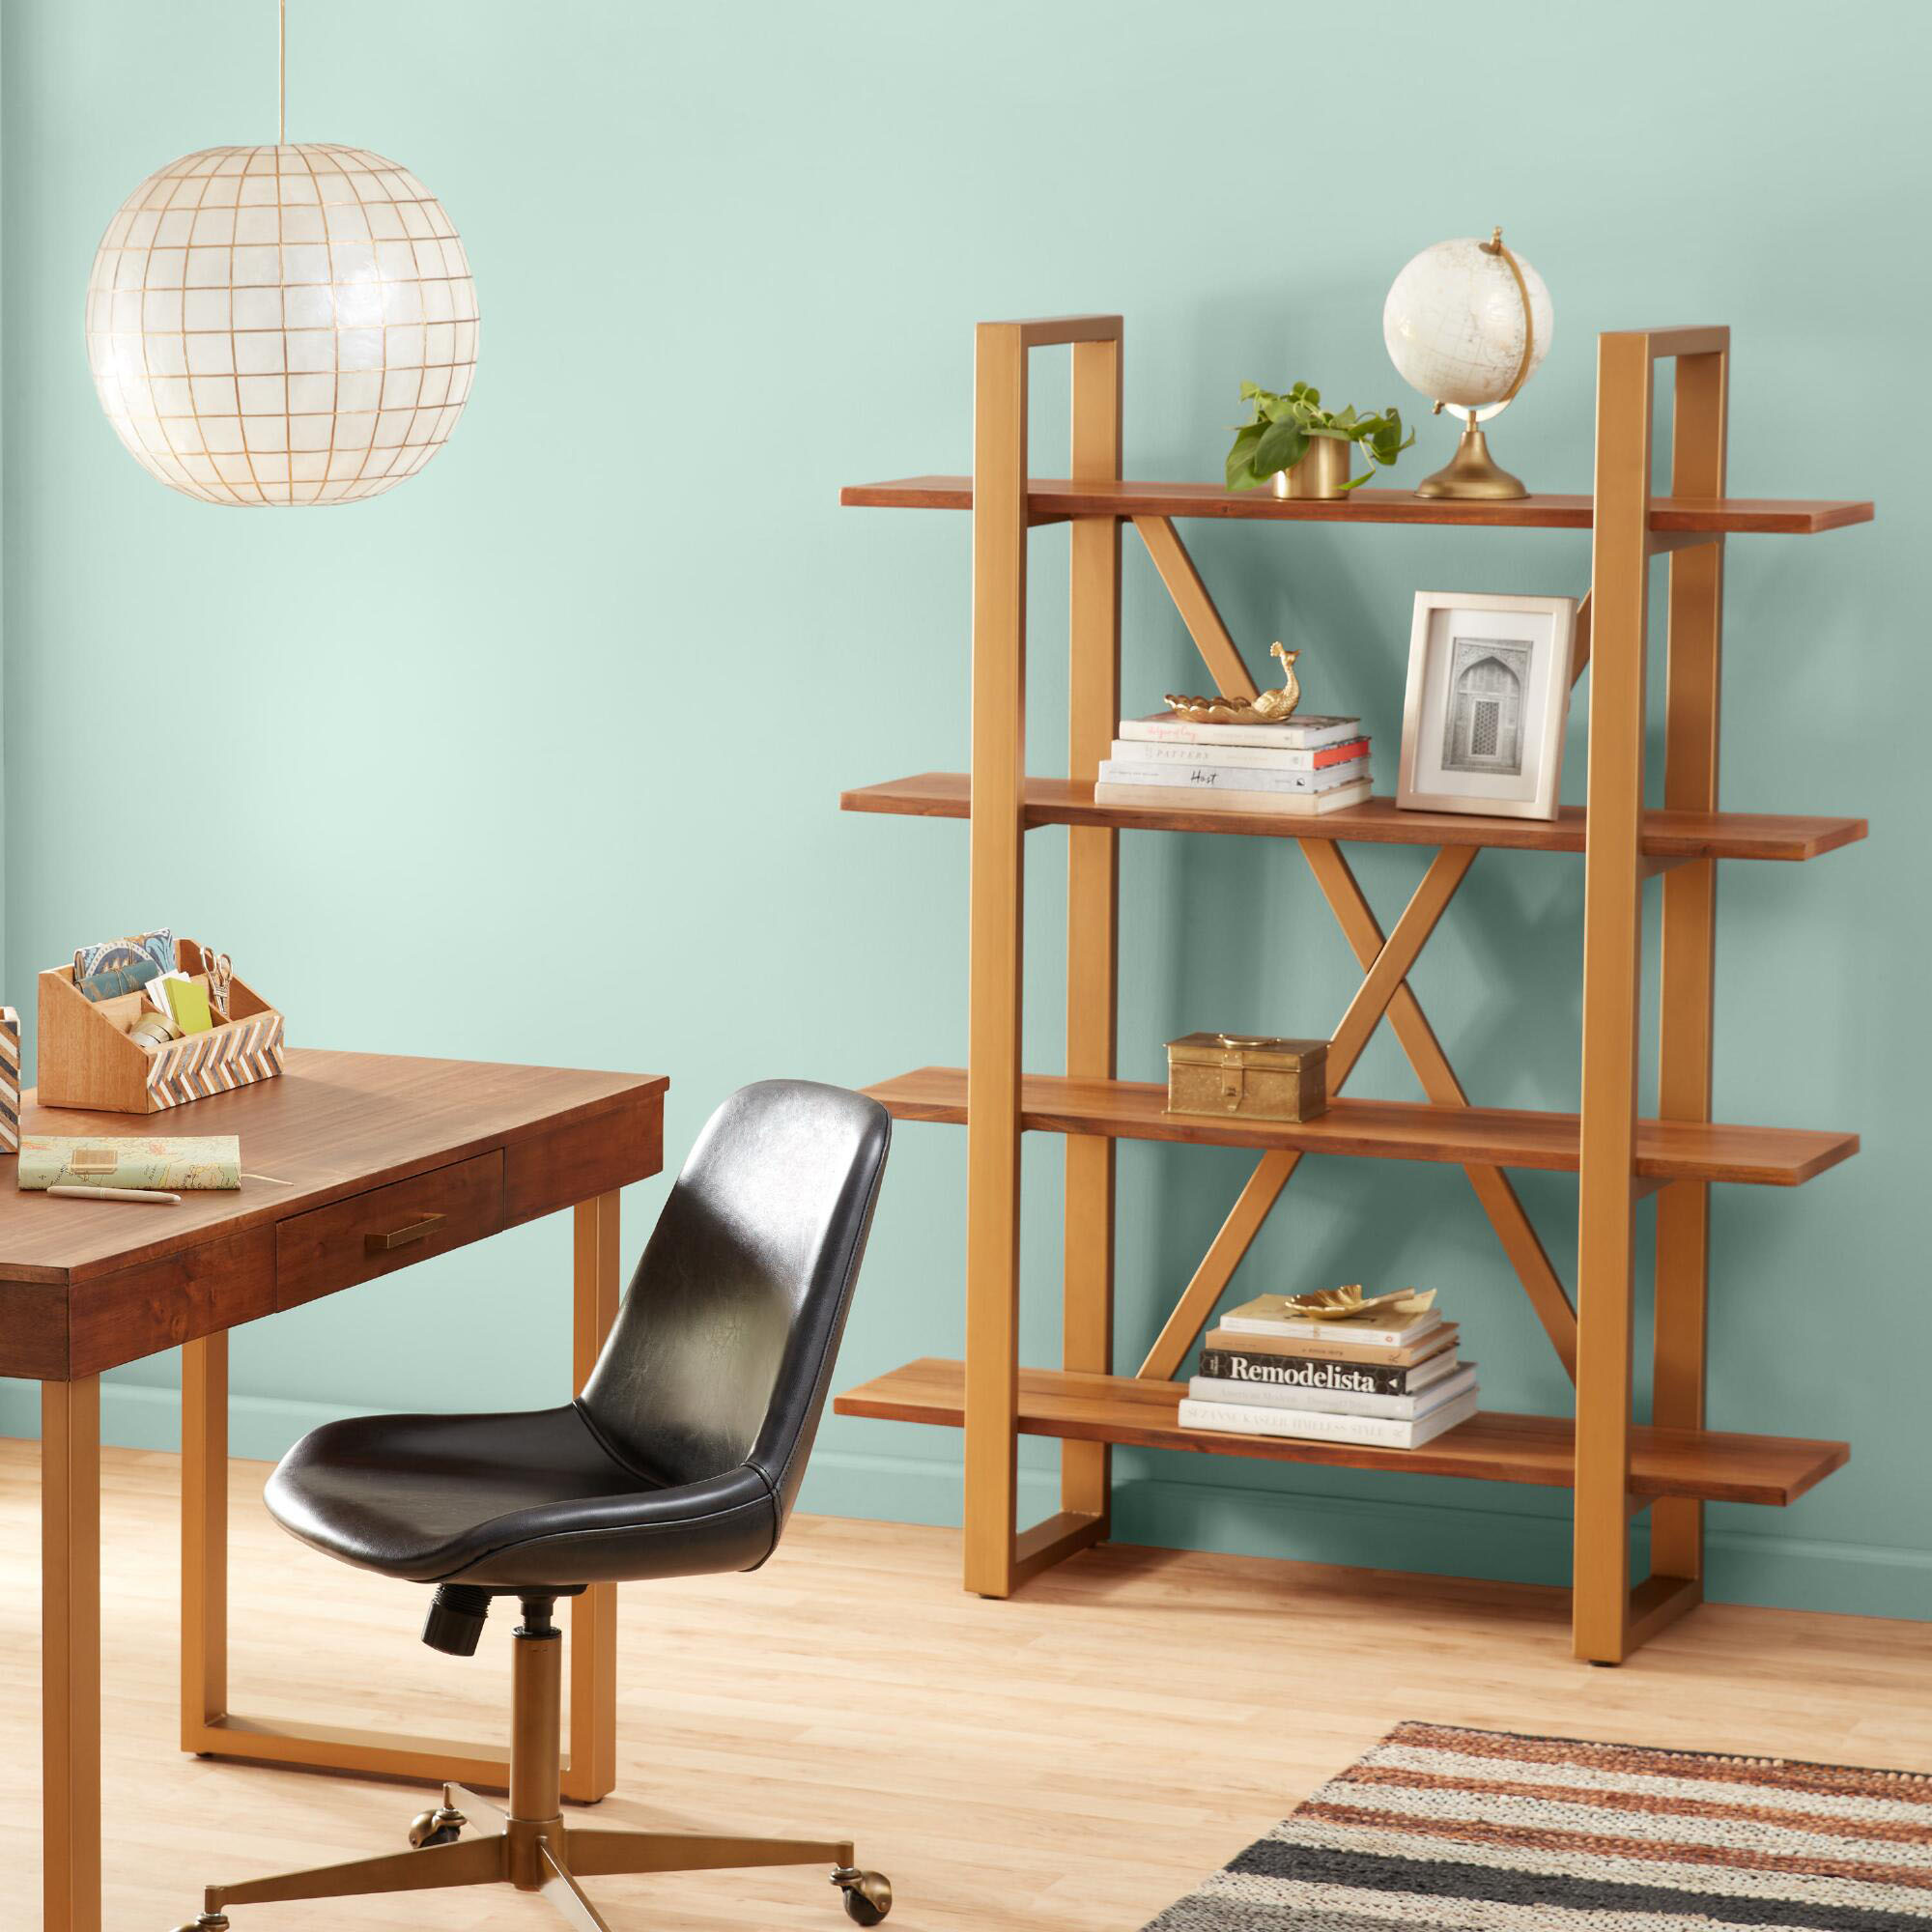 World Market Black Friday Home Office Deals